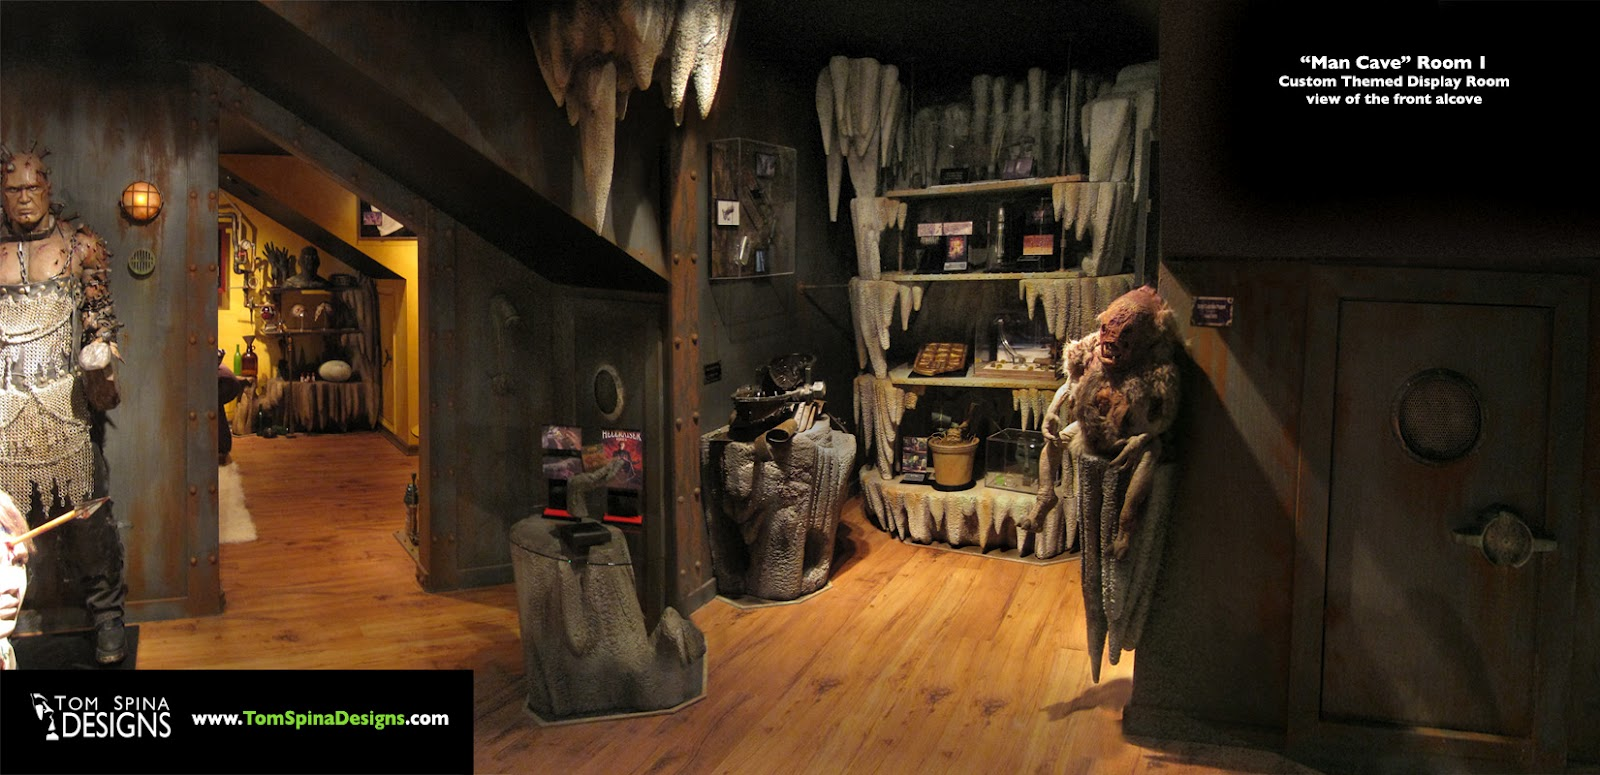 Man Cave Items Uk : Um brasileiro na terra do tio sam casas americanas the